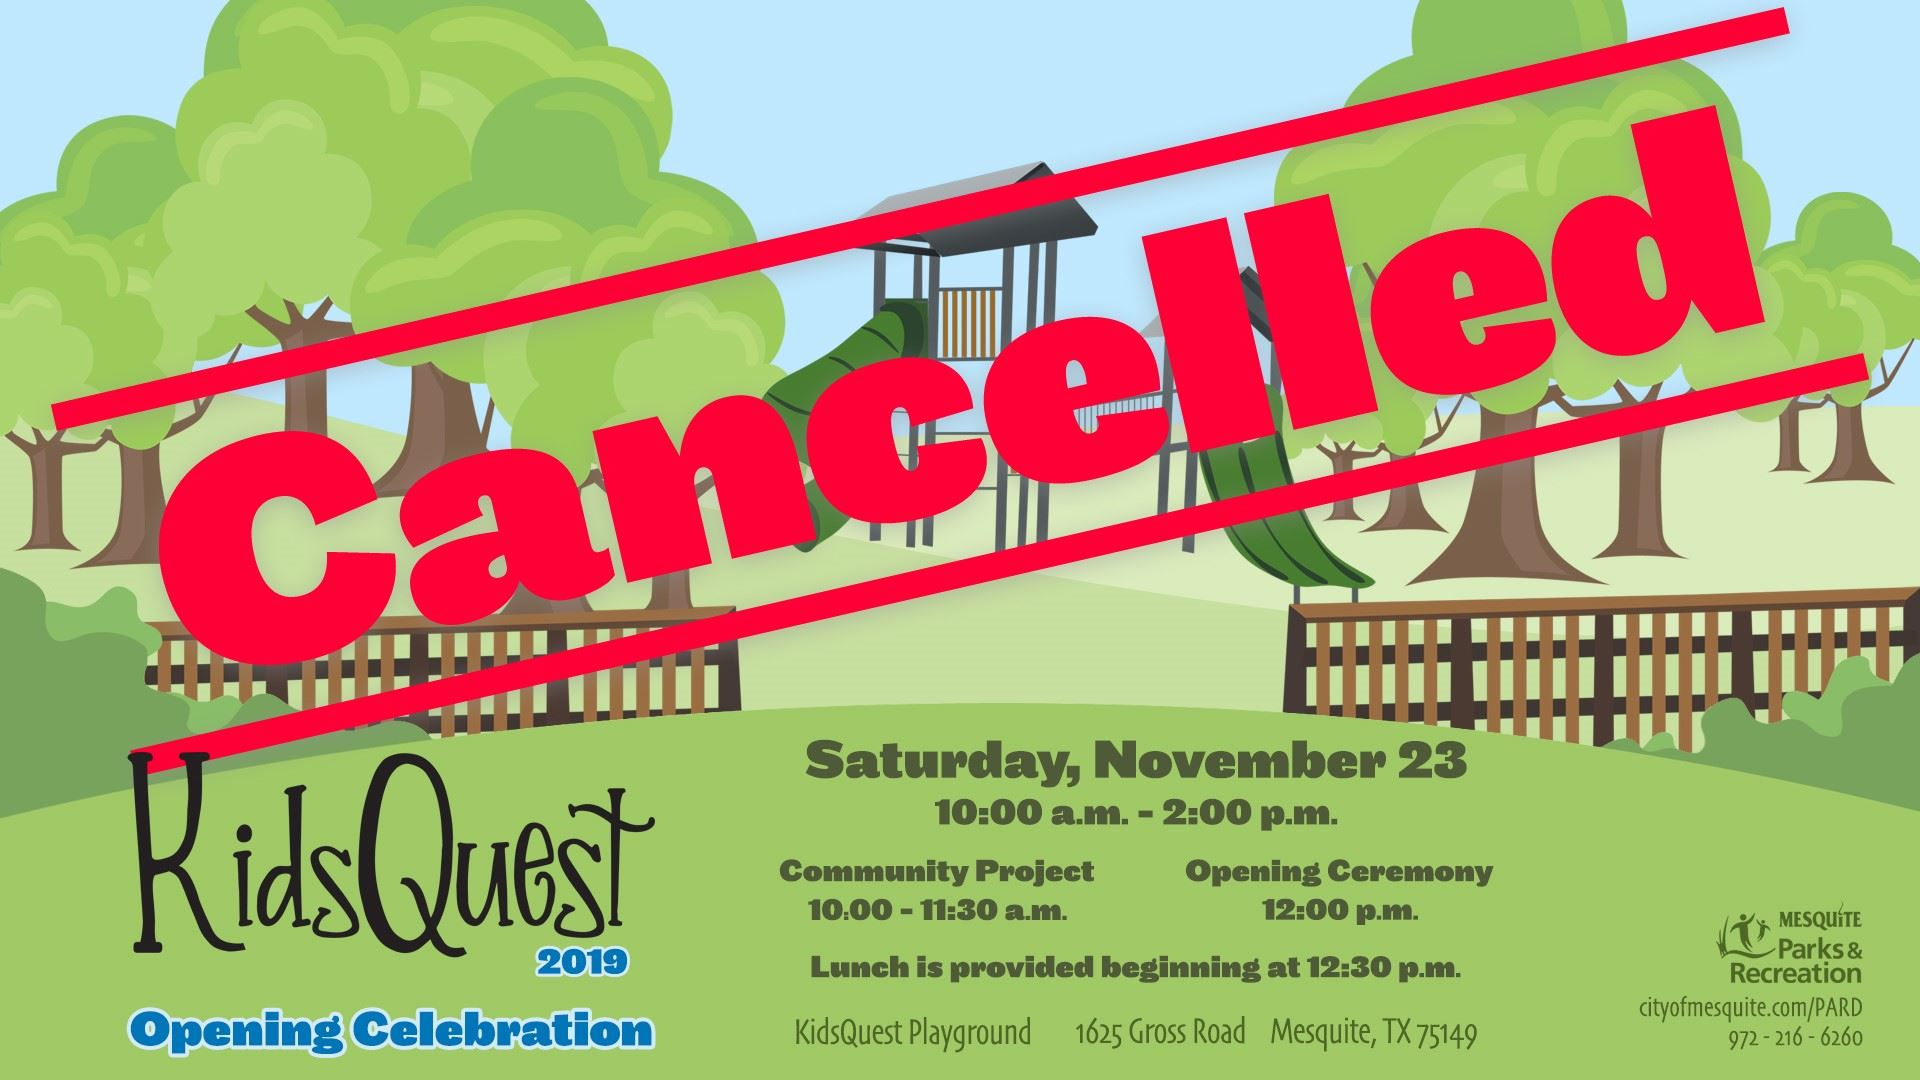 Nov. 23 KidsQuest playground opening celebration cancelled due to forecast weather. The playground opens to the public Dec. 2. The celebration will be rescheduled.